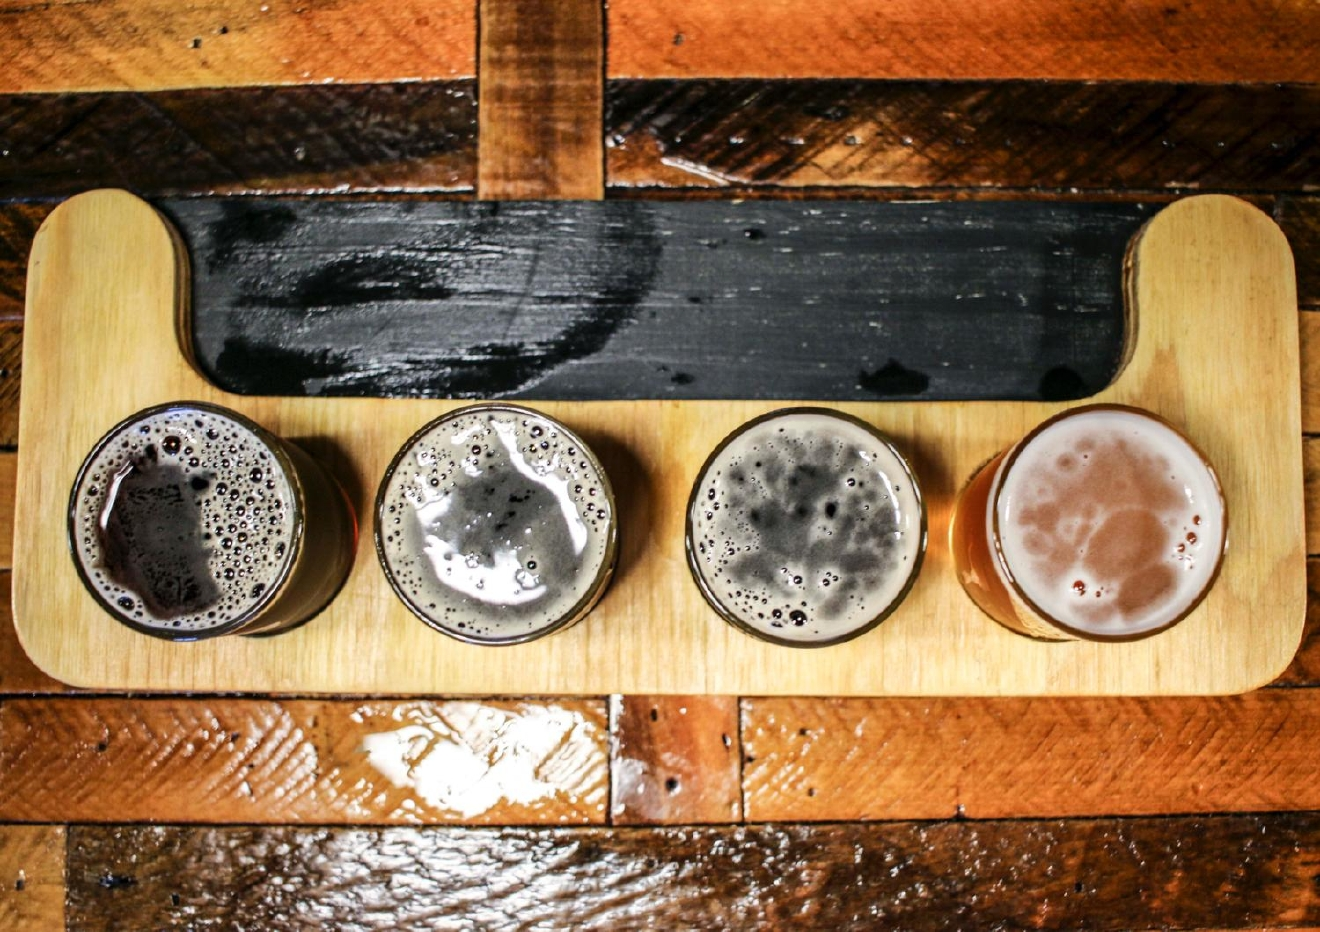 Shorty the Imp  Imperial Stout, Man on the Moo Milk Stout, Centennial Anomaly Black Session Ale, Marrigold Smash Beer Golden Ale / Image: Tommy Zipperstein